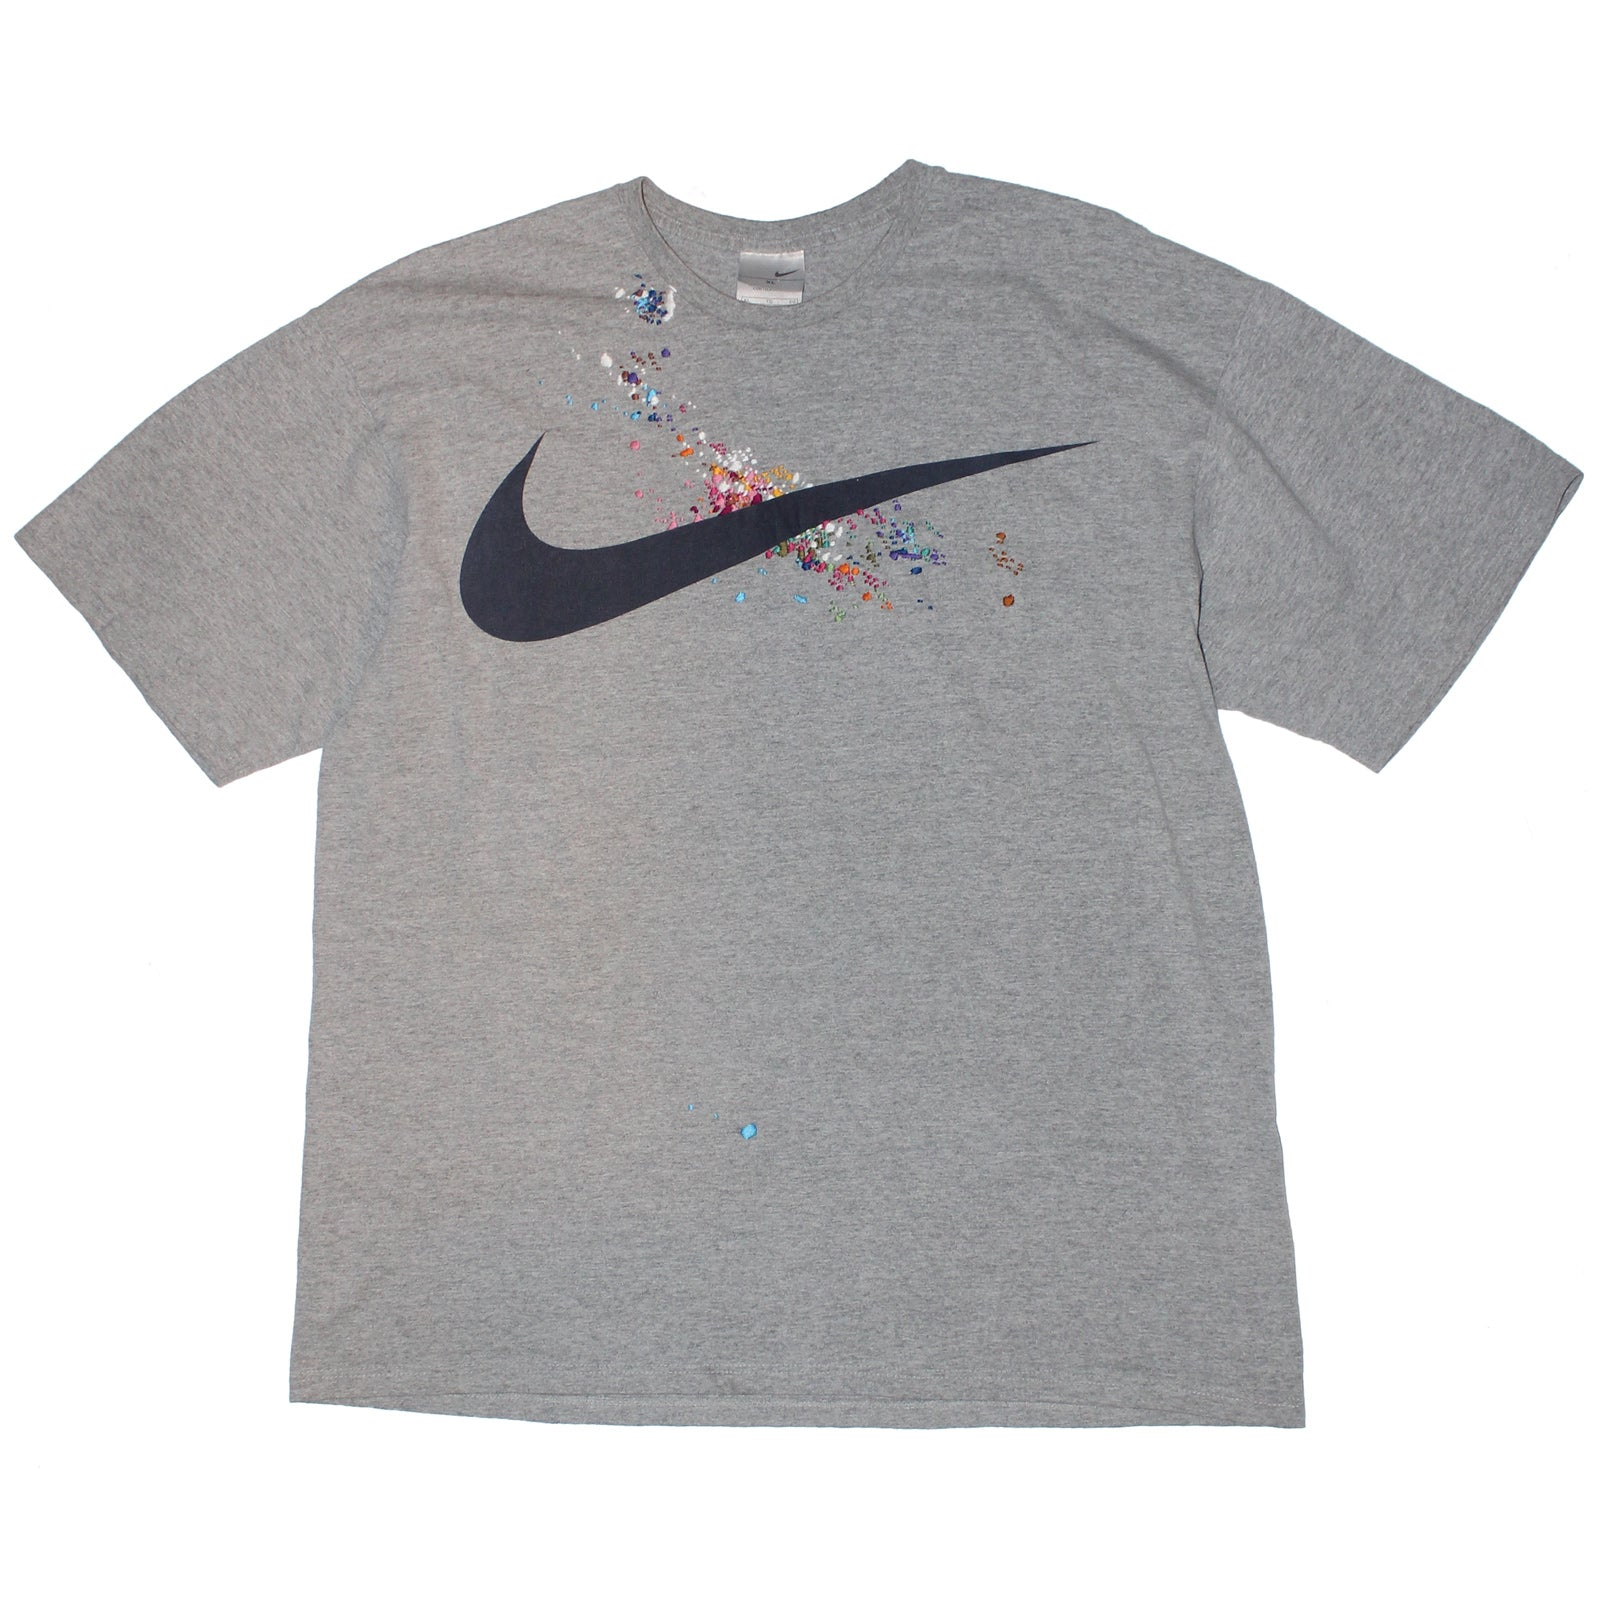 "BANDULU ""BIG MOOD"" VINTAGE  NIKE XL TEE"